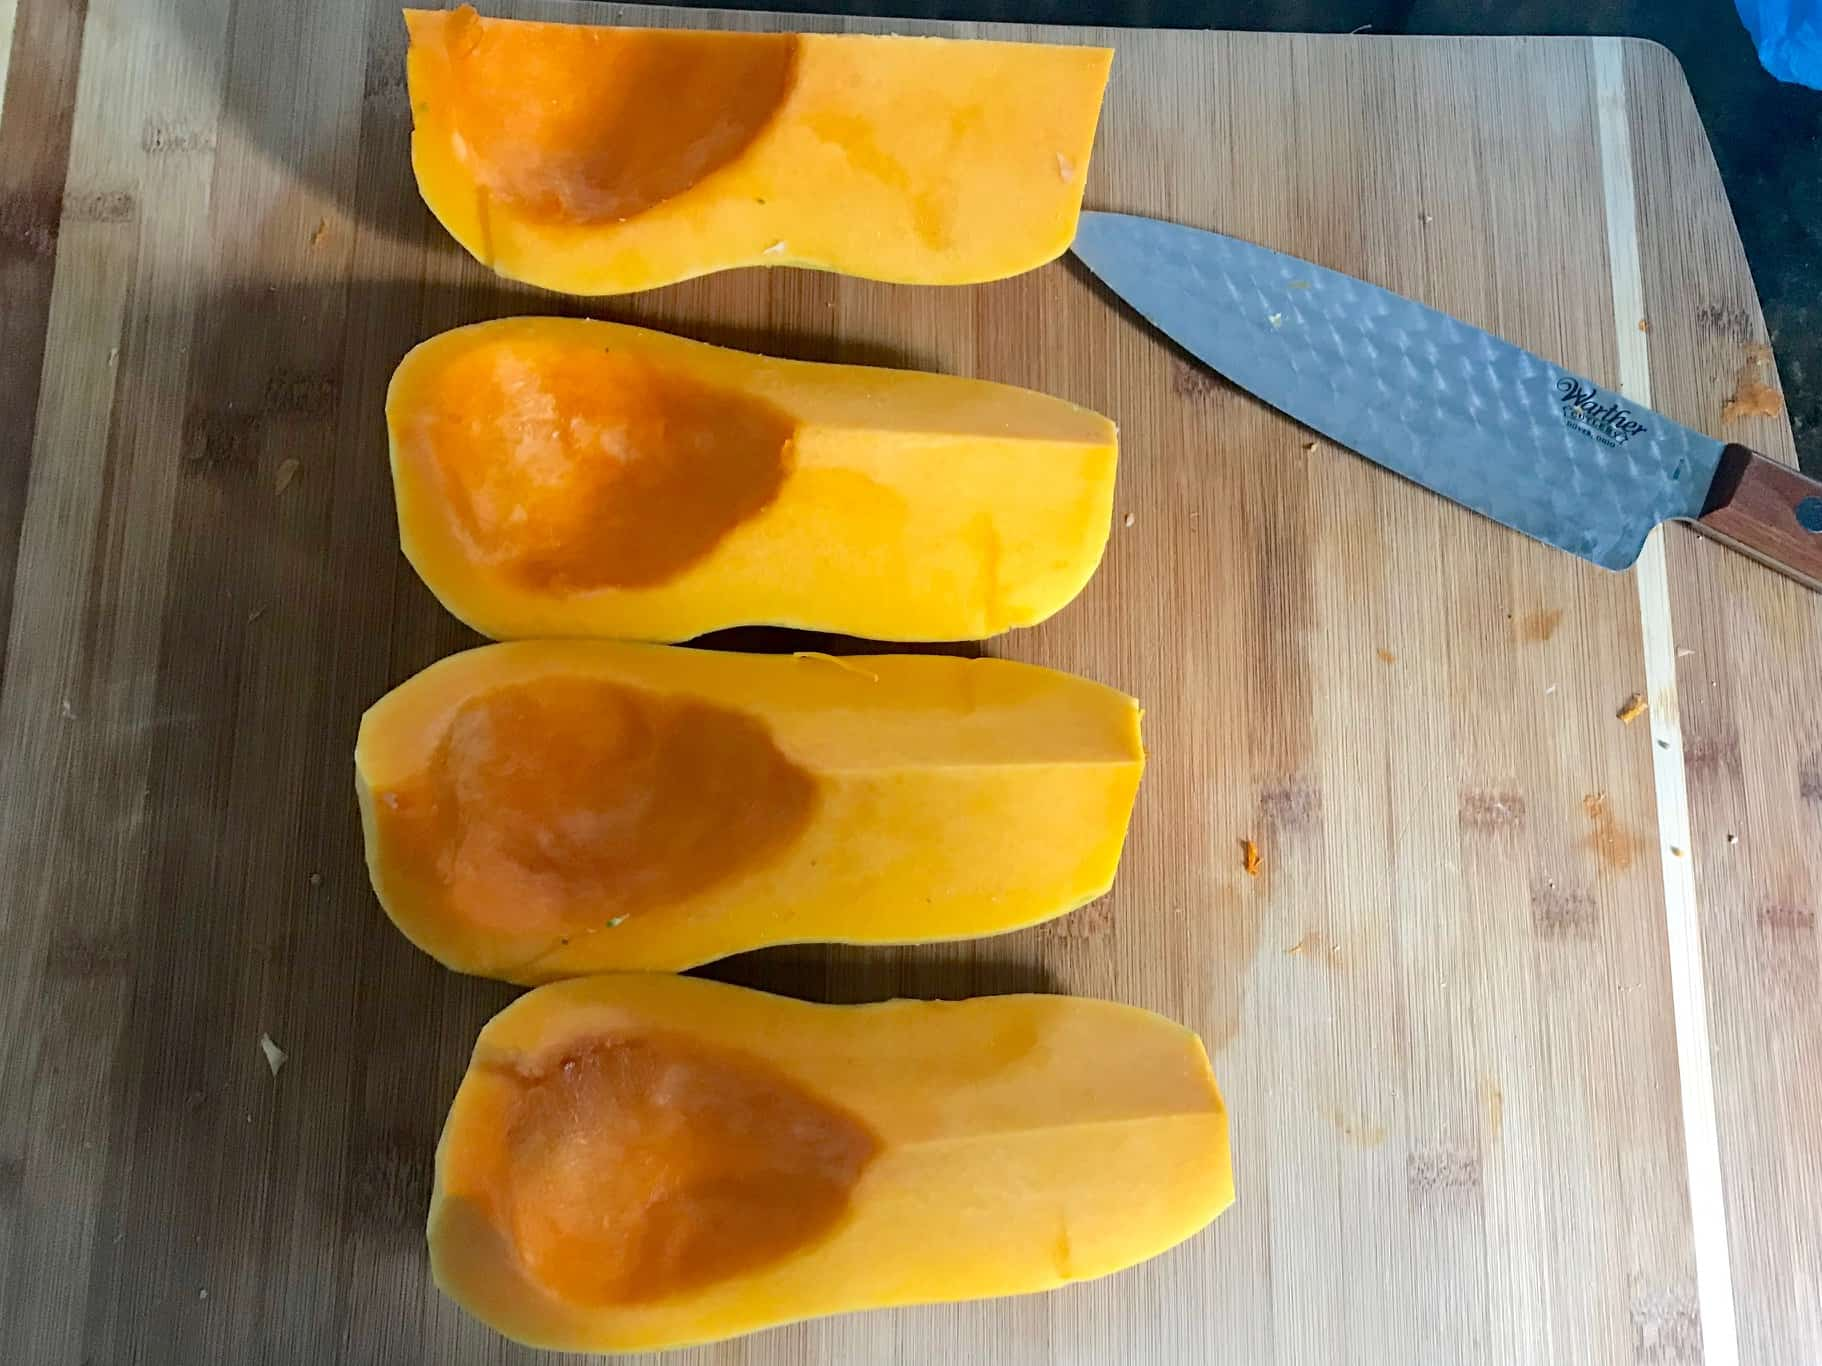 Butternut squash peeled and cut into fourths